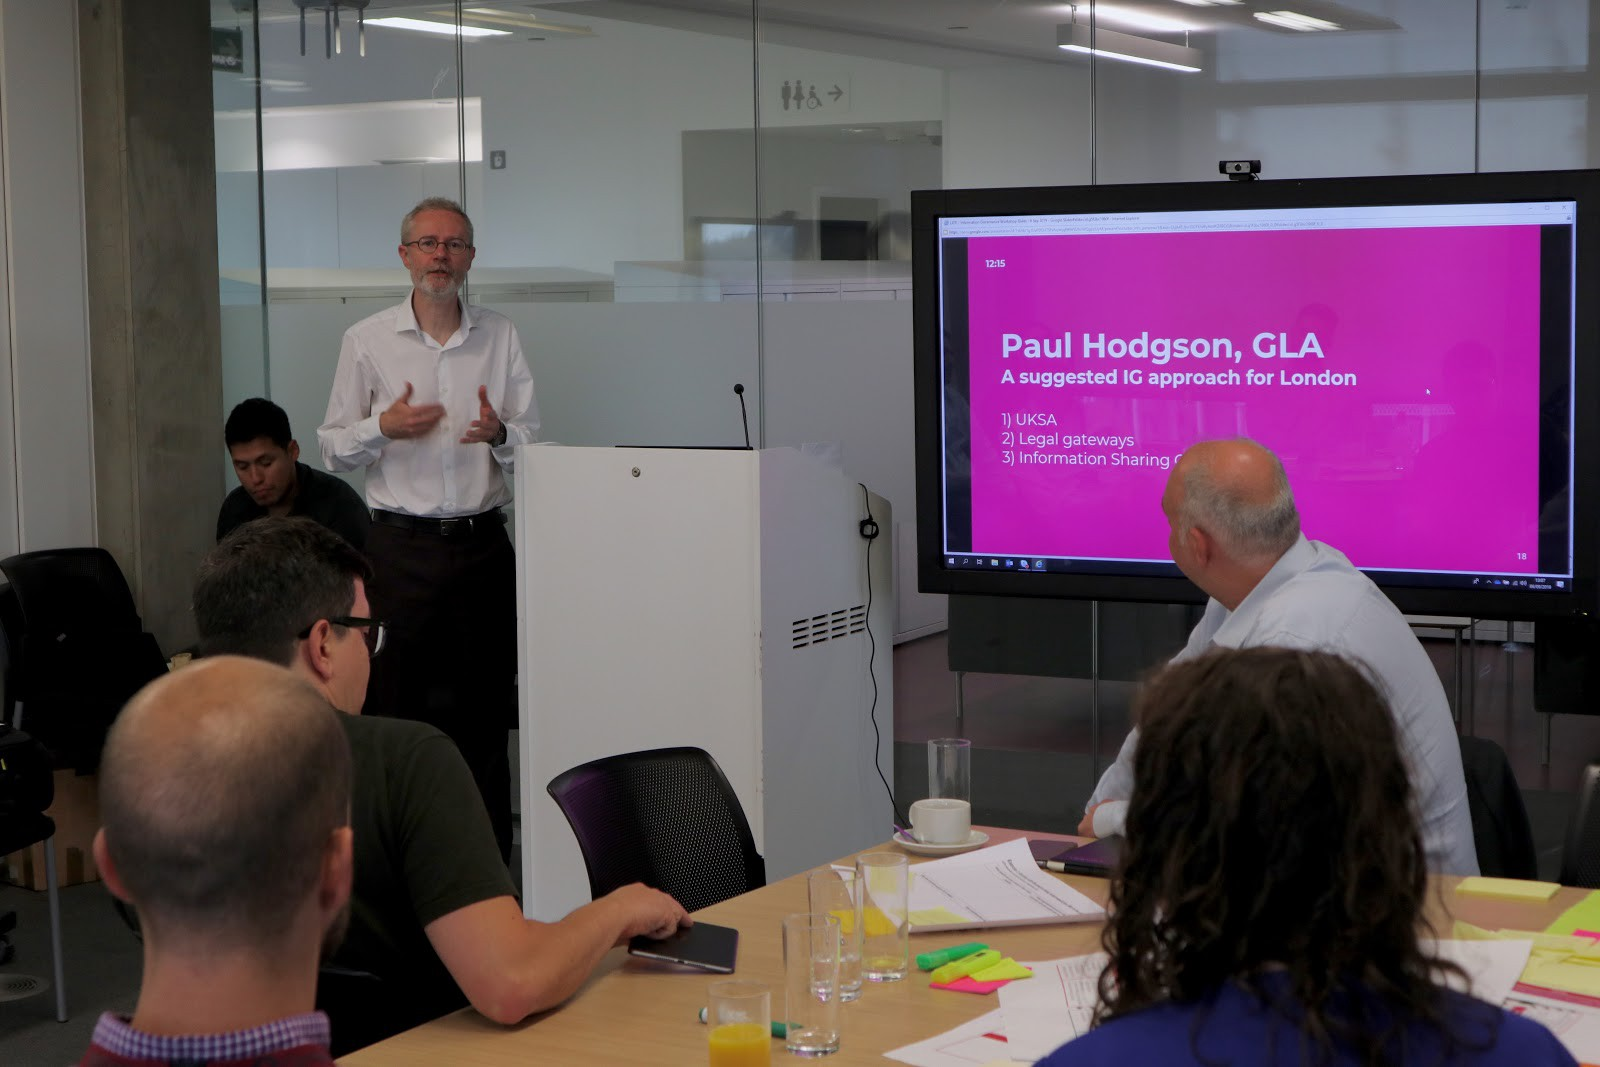 Paul Hodgson, Senior Manager for City Data at the Greater London Authority (GLA)